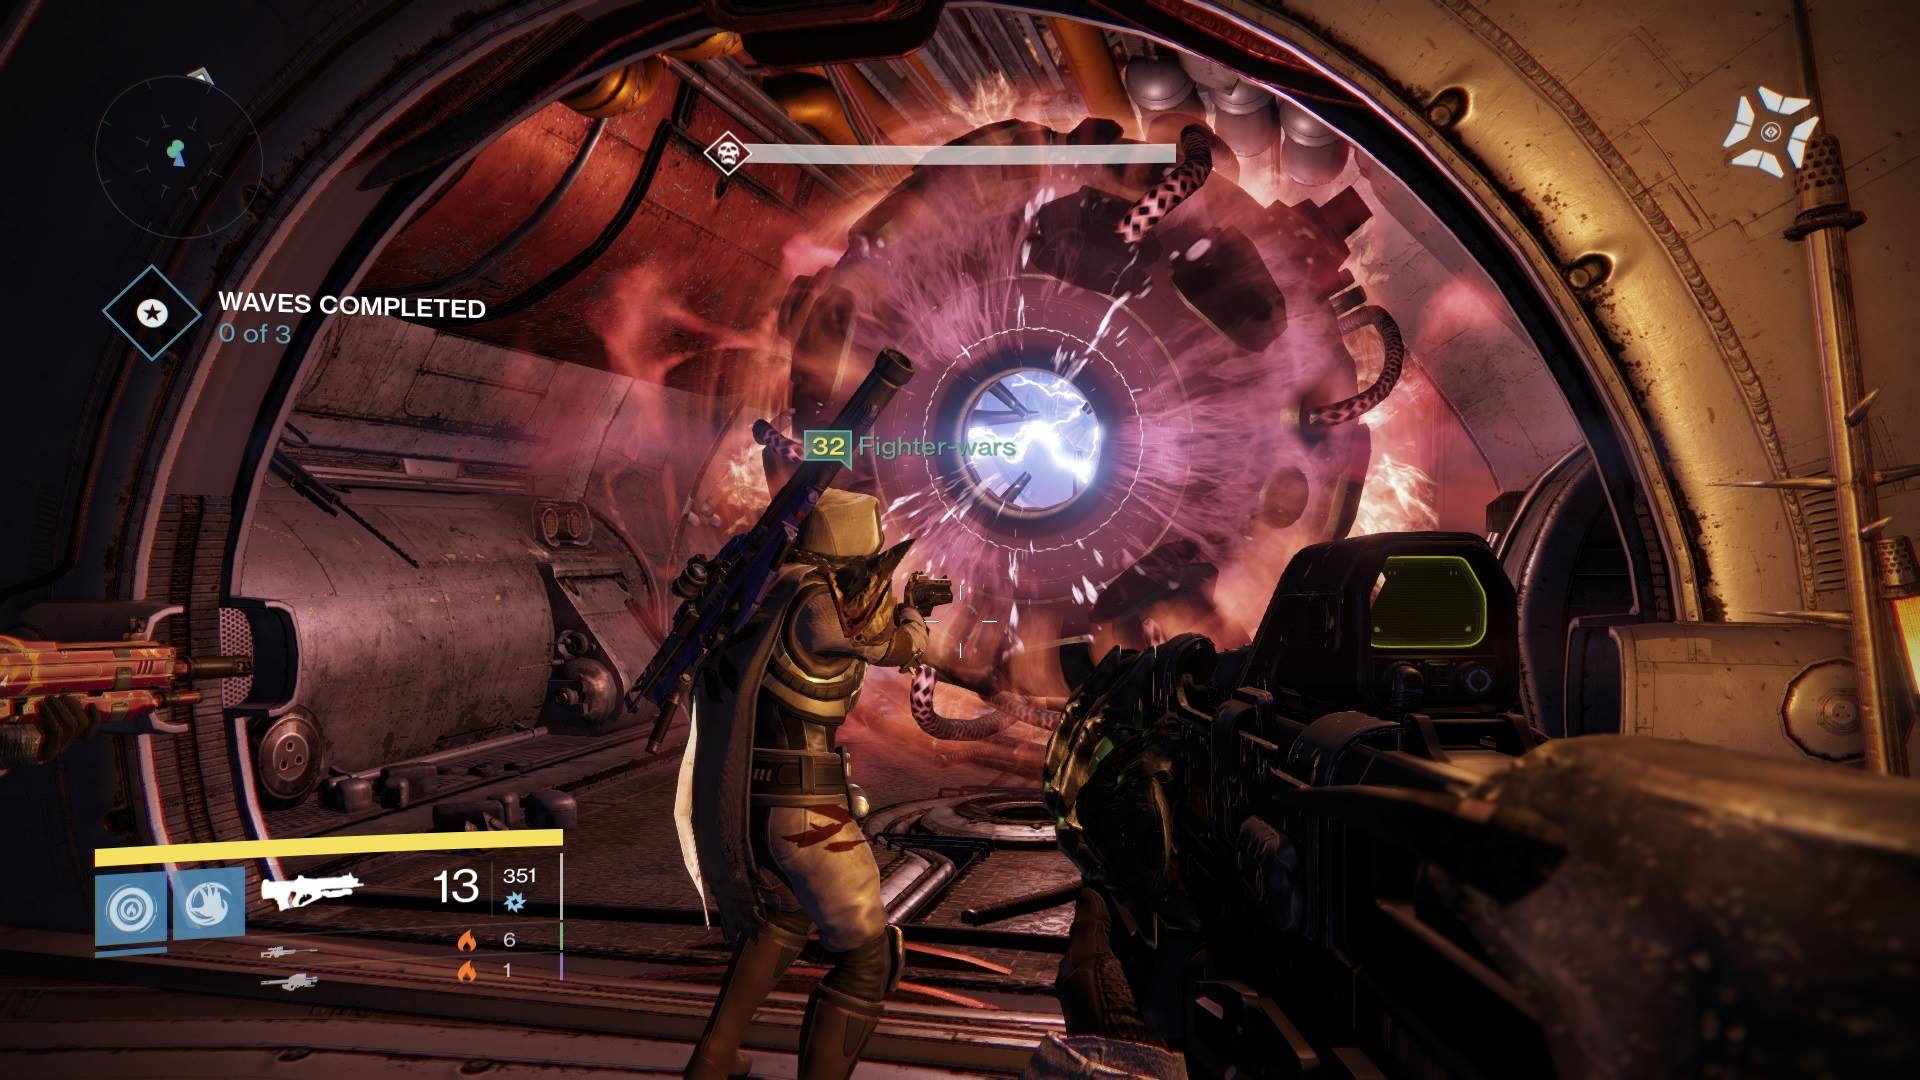 Destiny house of wolves prison of elders fallen arena tips and